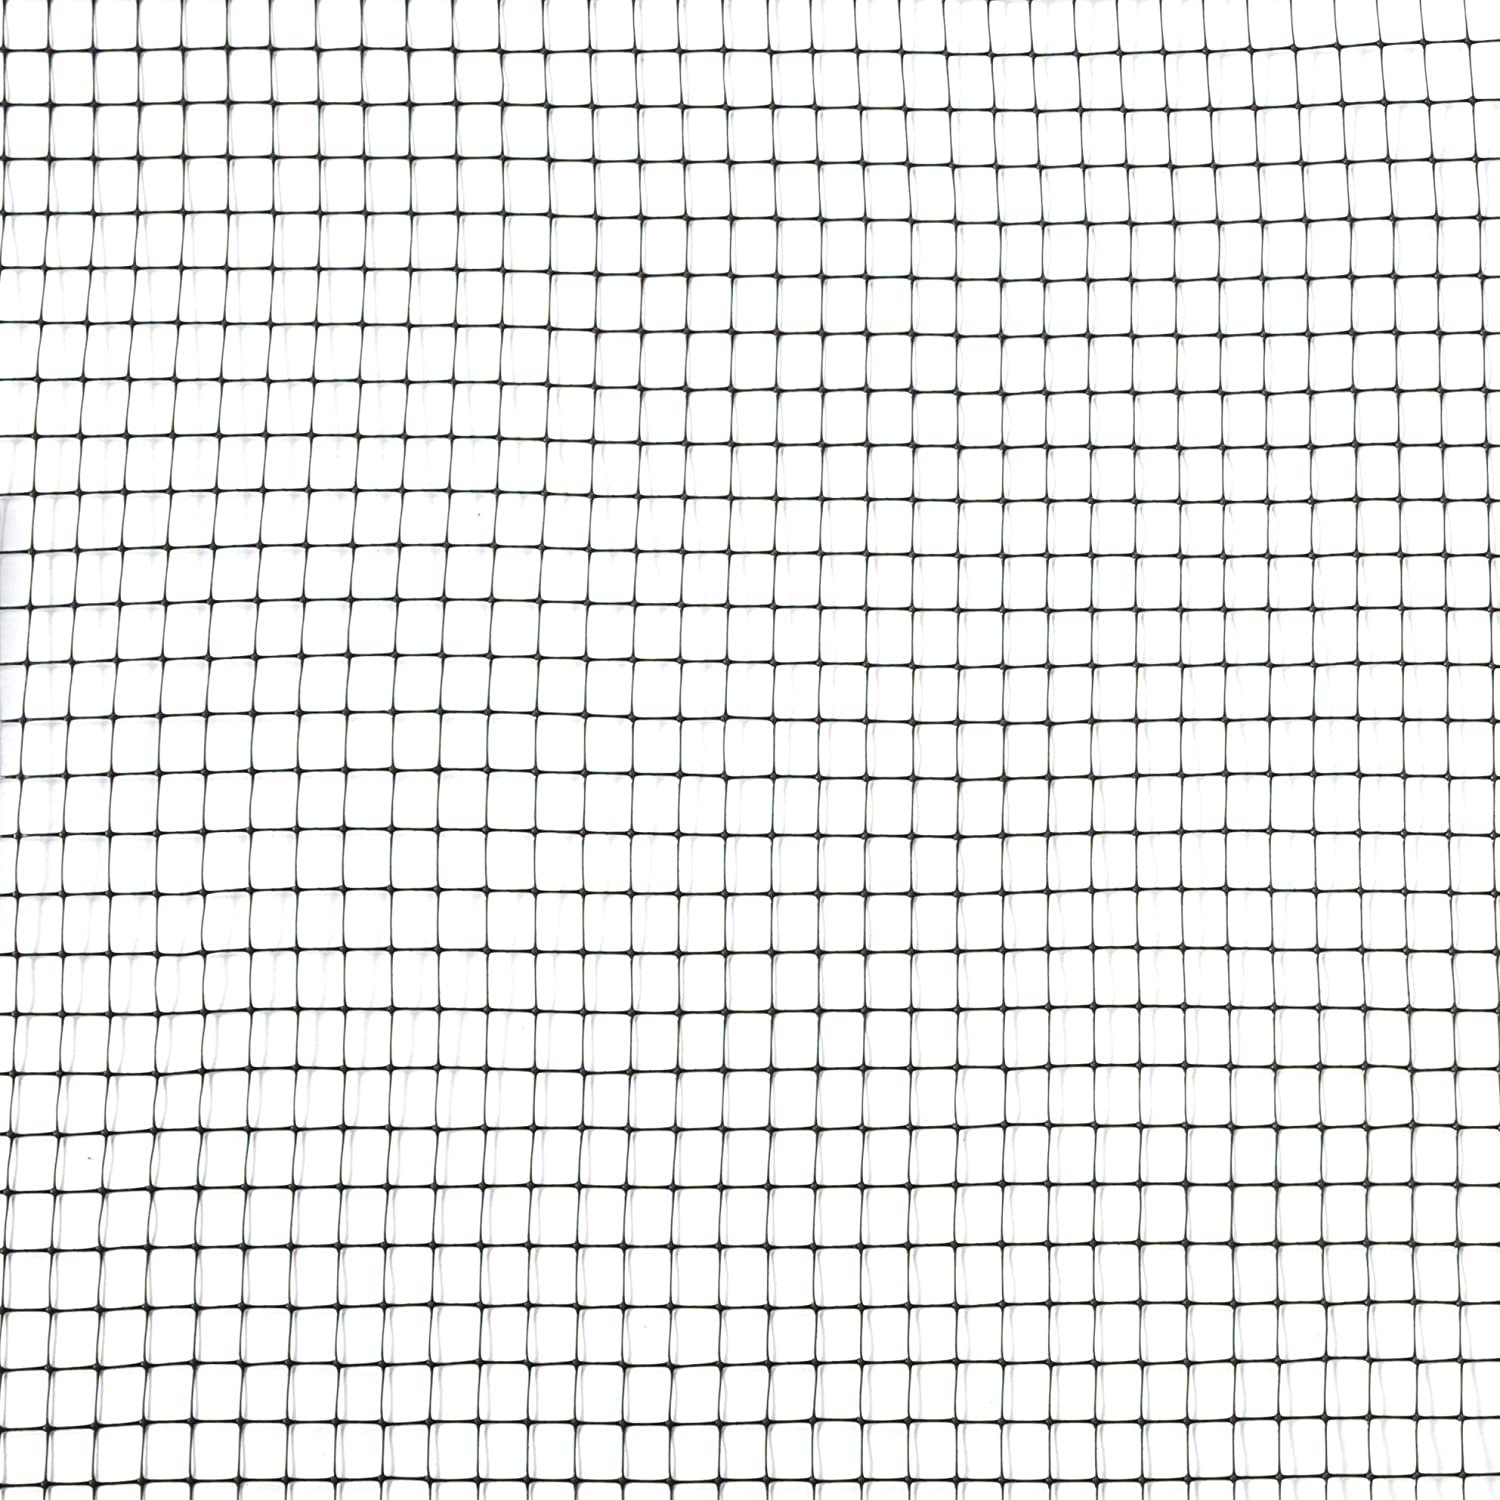 Tenax 60041989 Multi-Purpose Net, 3' x 50', Black